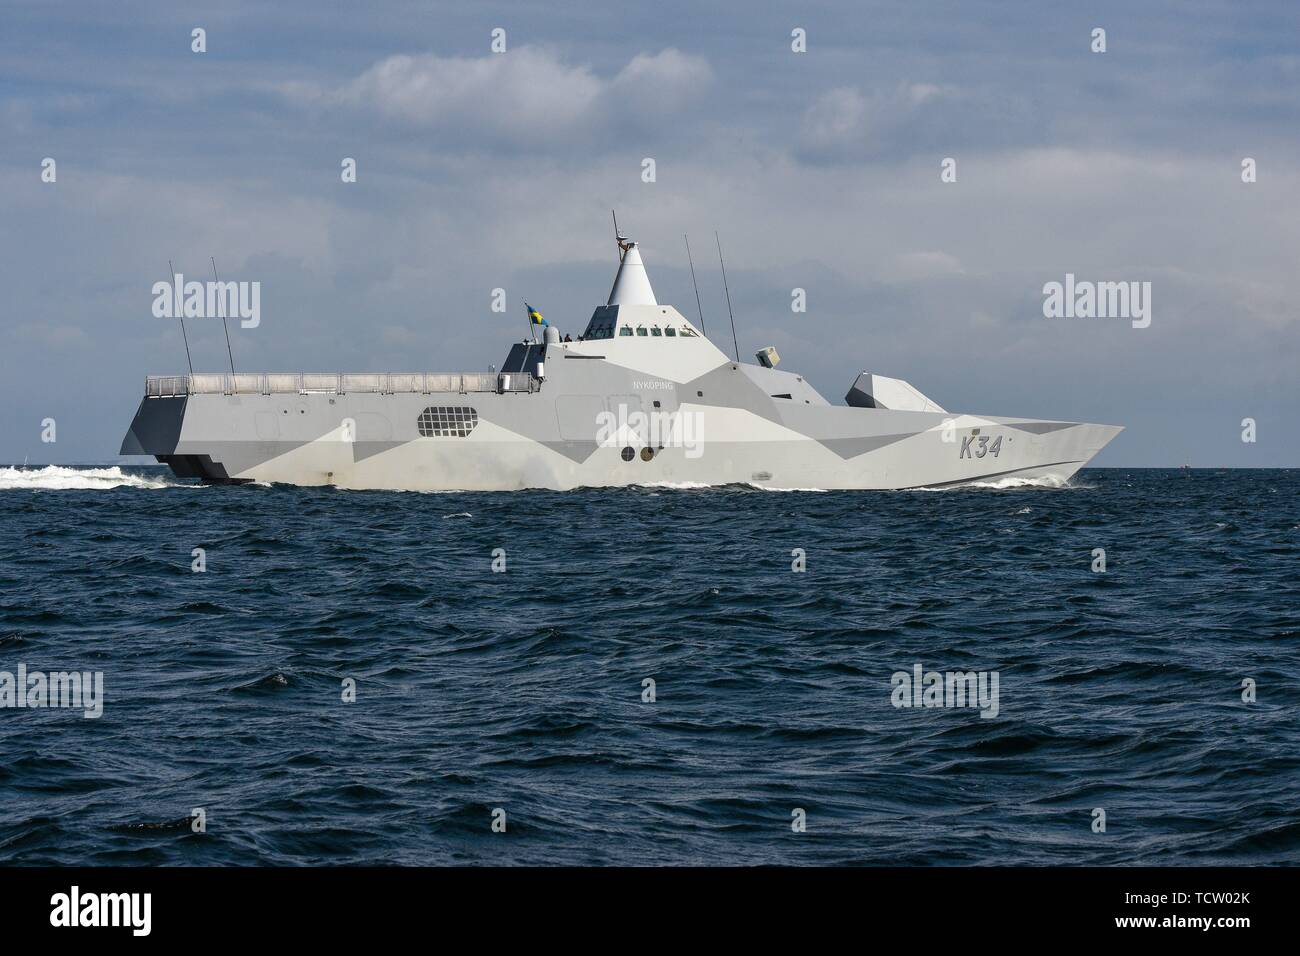 Keel, Deutschland. 09th June, 2019. 09.06.2019, the Corvette K34 Nykoping of the Swedish Navy when leaving the Kiel Forde. The stealth ship participates in the NATO maneuver BALTOPS. The Visby class corvettes are among the world's first stealthy design stealth aircraft. Its water jet propulsion system has a maximum speed of 35 knots (65 km/h). | usage worldwide Credit: dpa/Alamy Live News - Stock Image